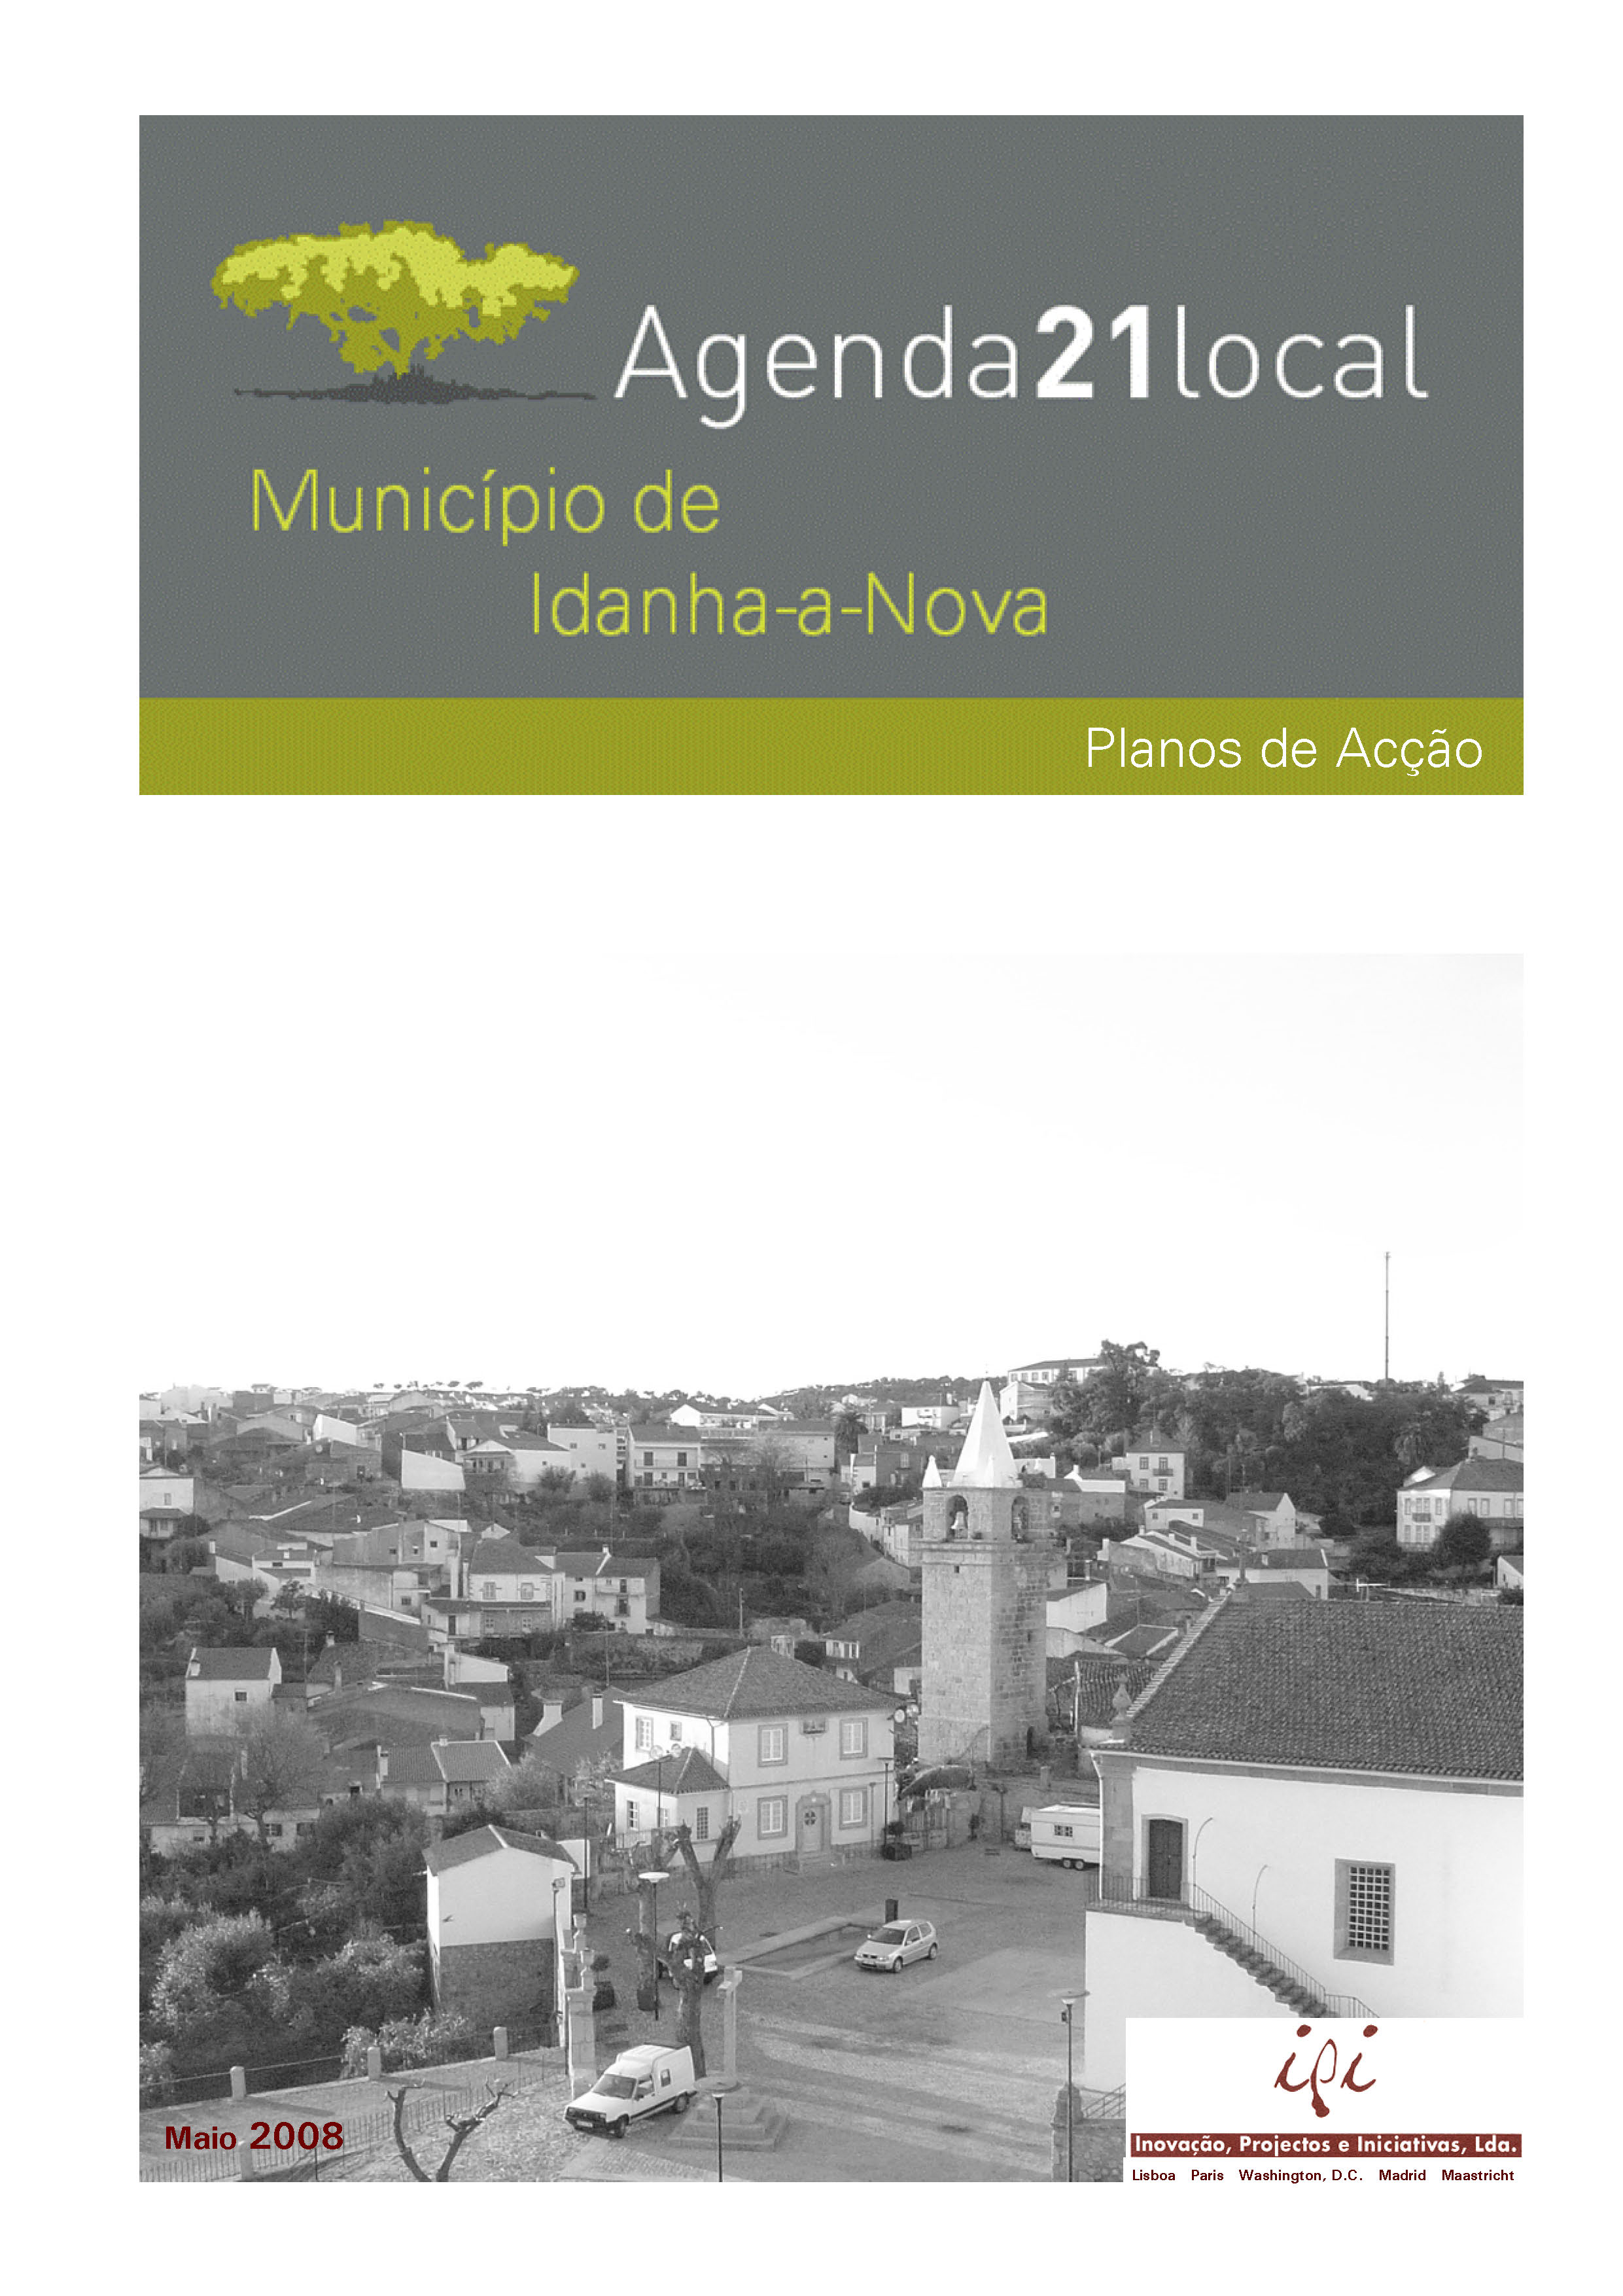 Agenda local 21Planos Accao